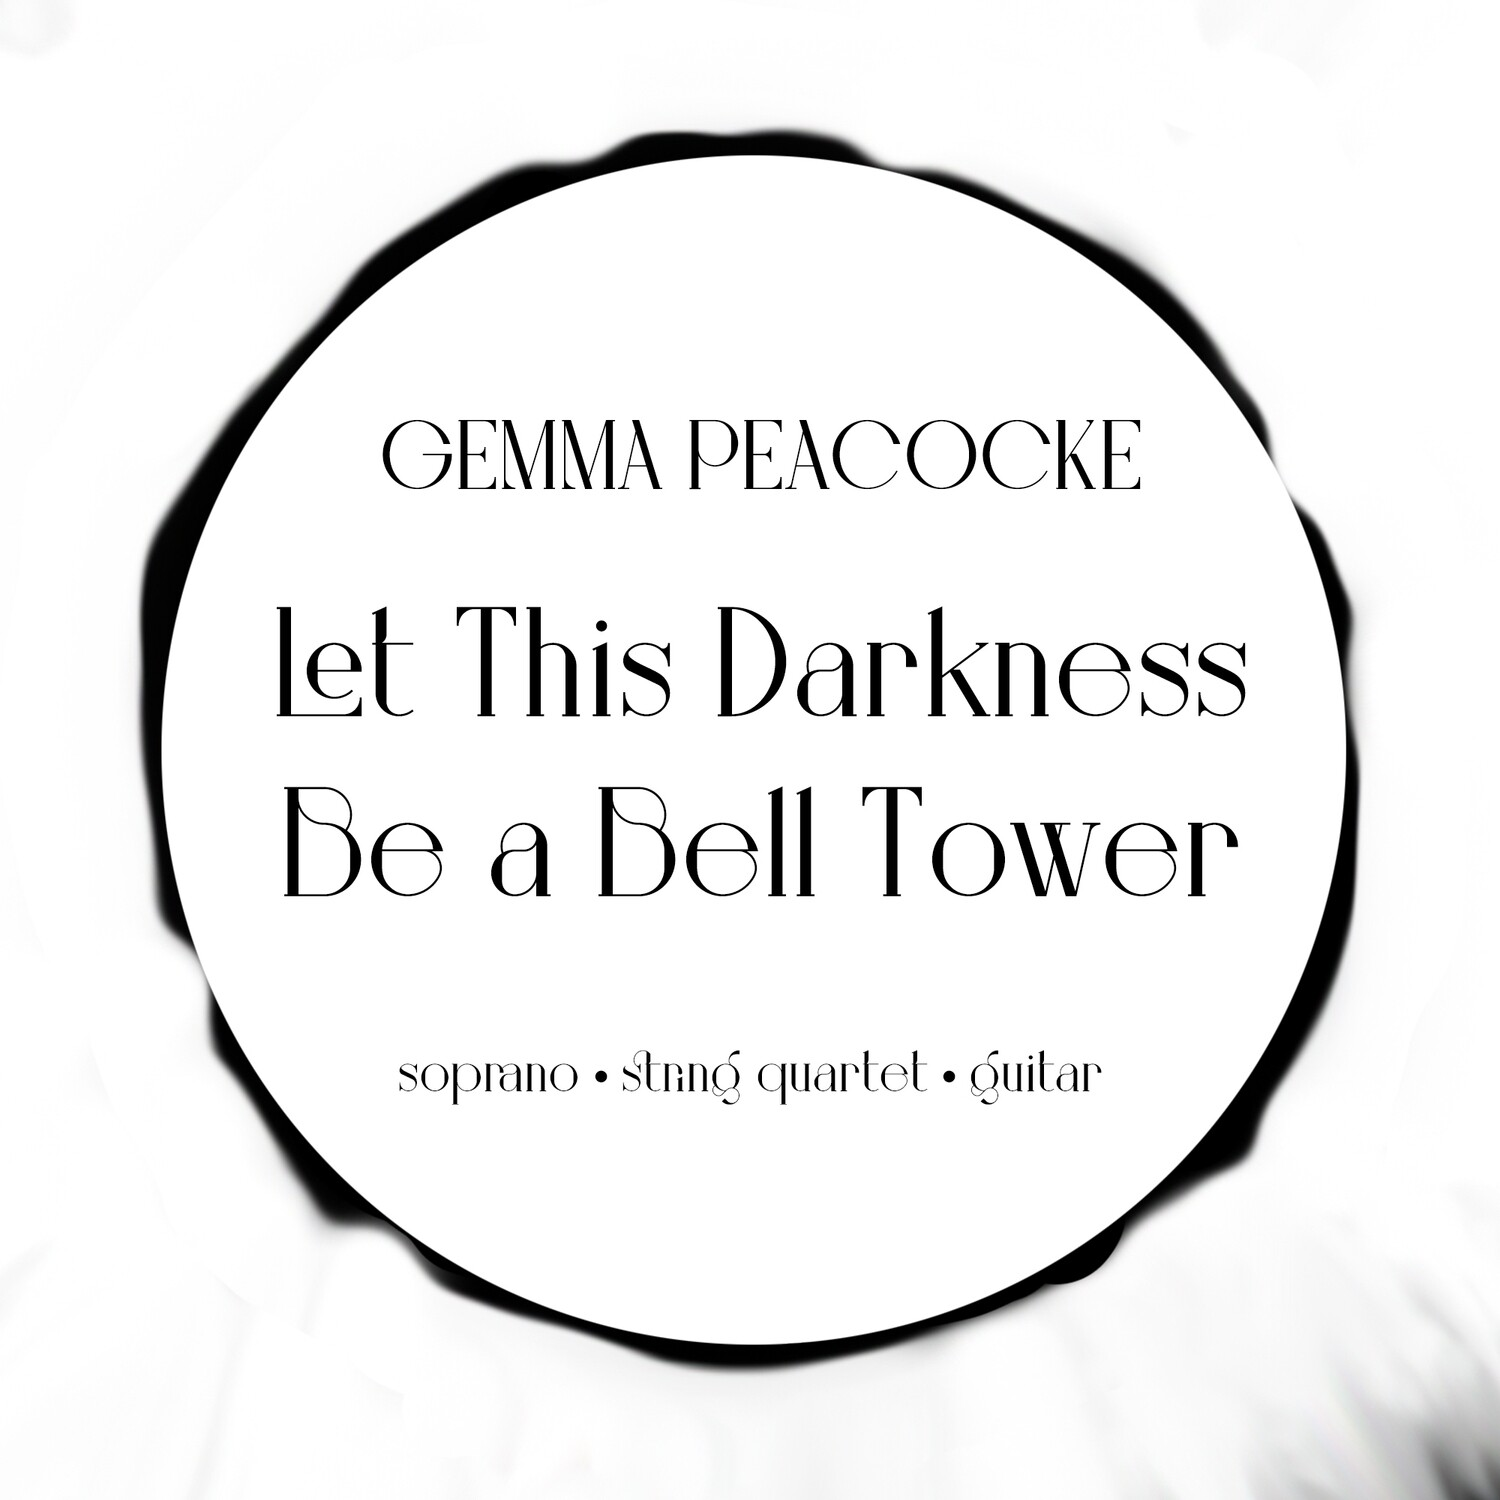 Let This Darkness Be a Bell Tower